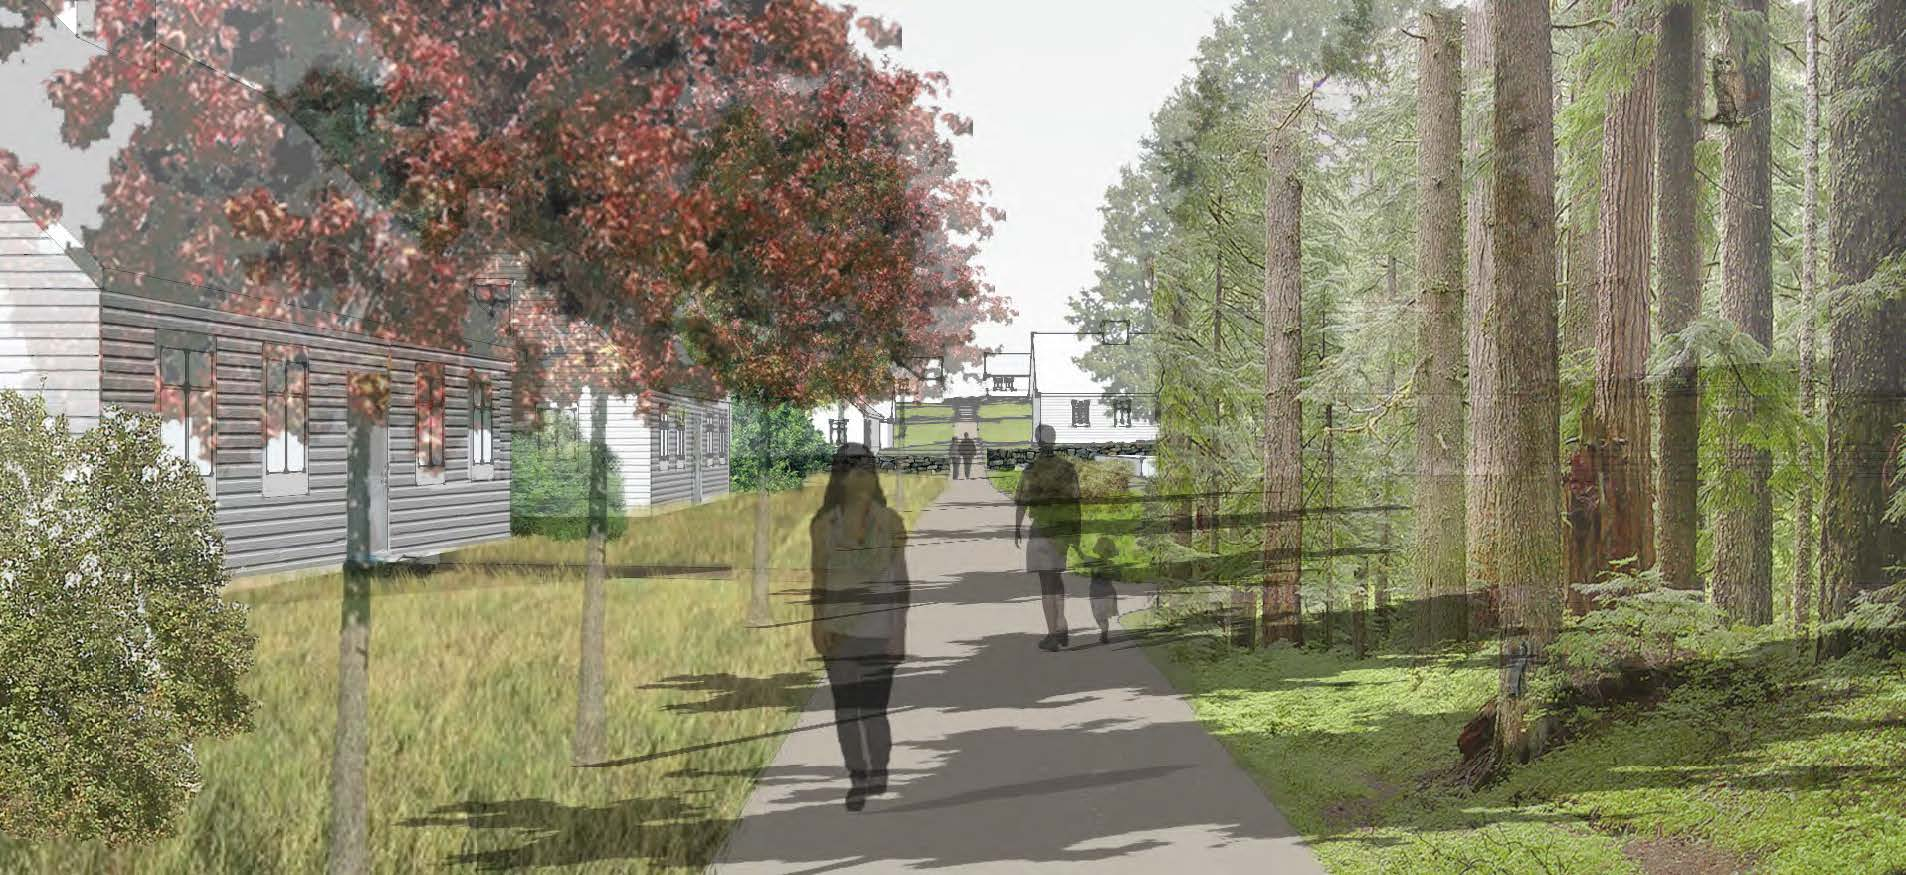 NEW ENGLAND HOUSING USING THE CONCEPT OF STONE WALLS AND HOW THEY SHAPE SPACE - View of Main Pedestrian Corridor - COLIN O'DONNELL